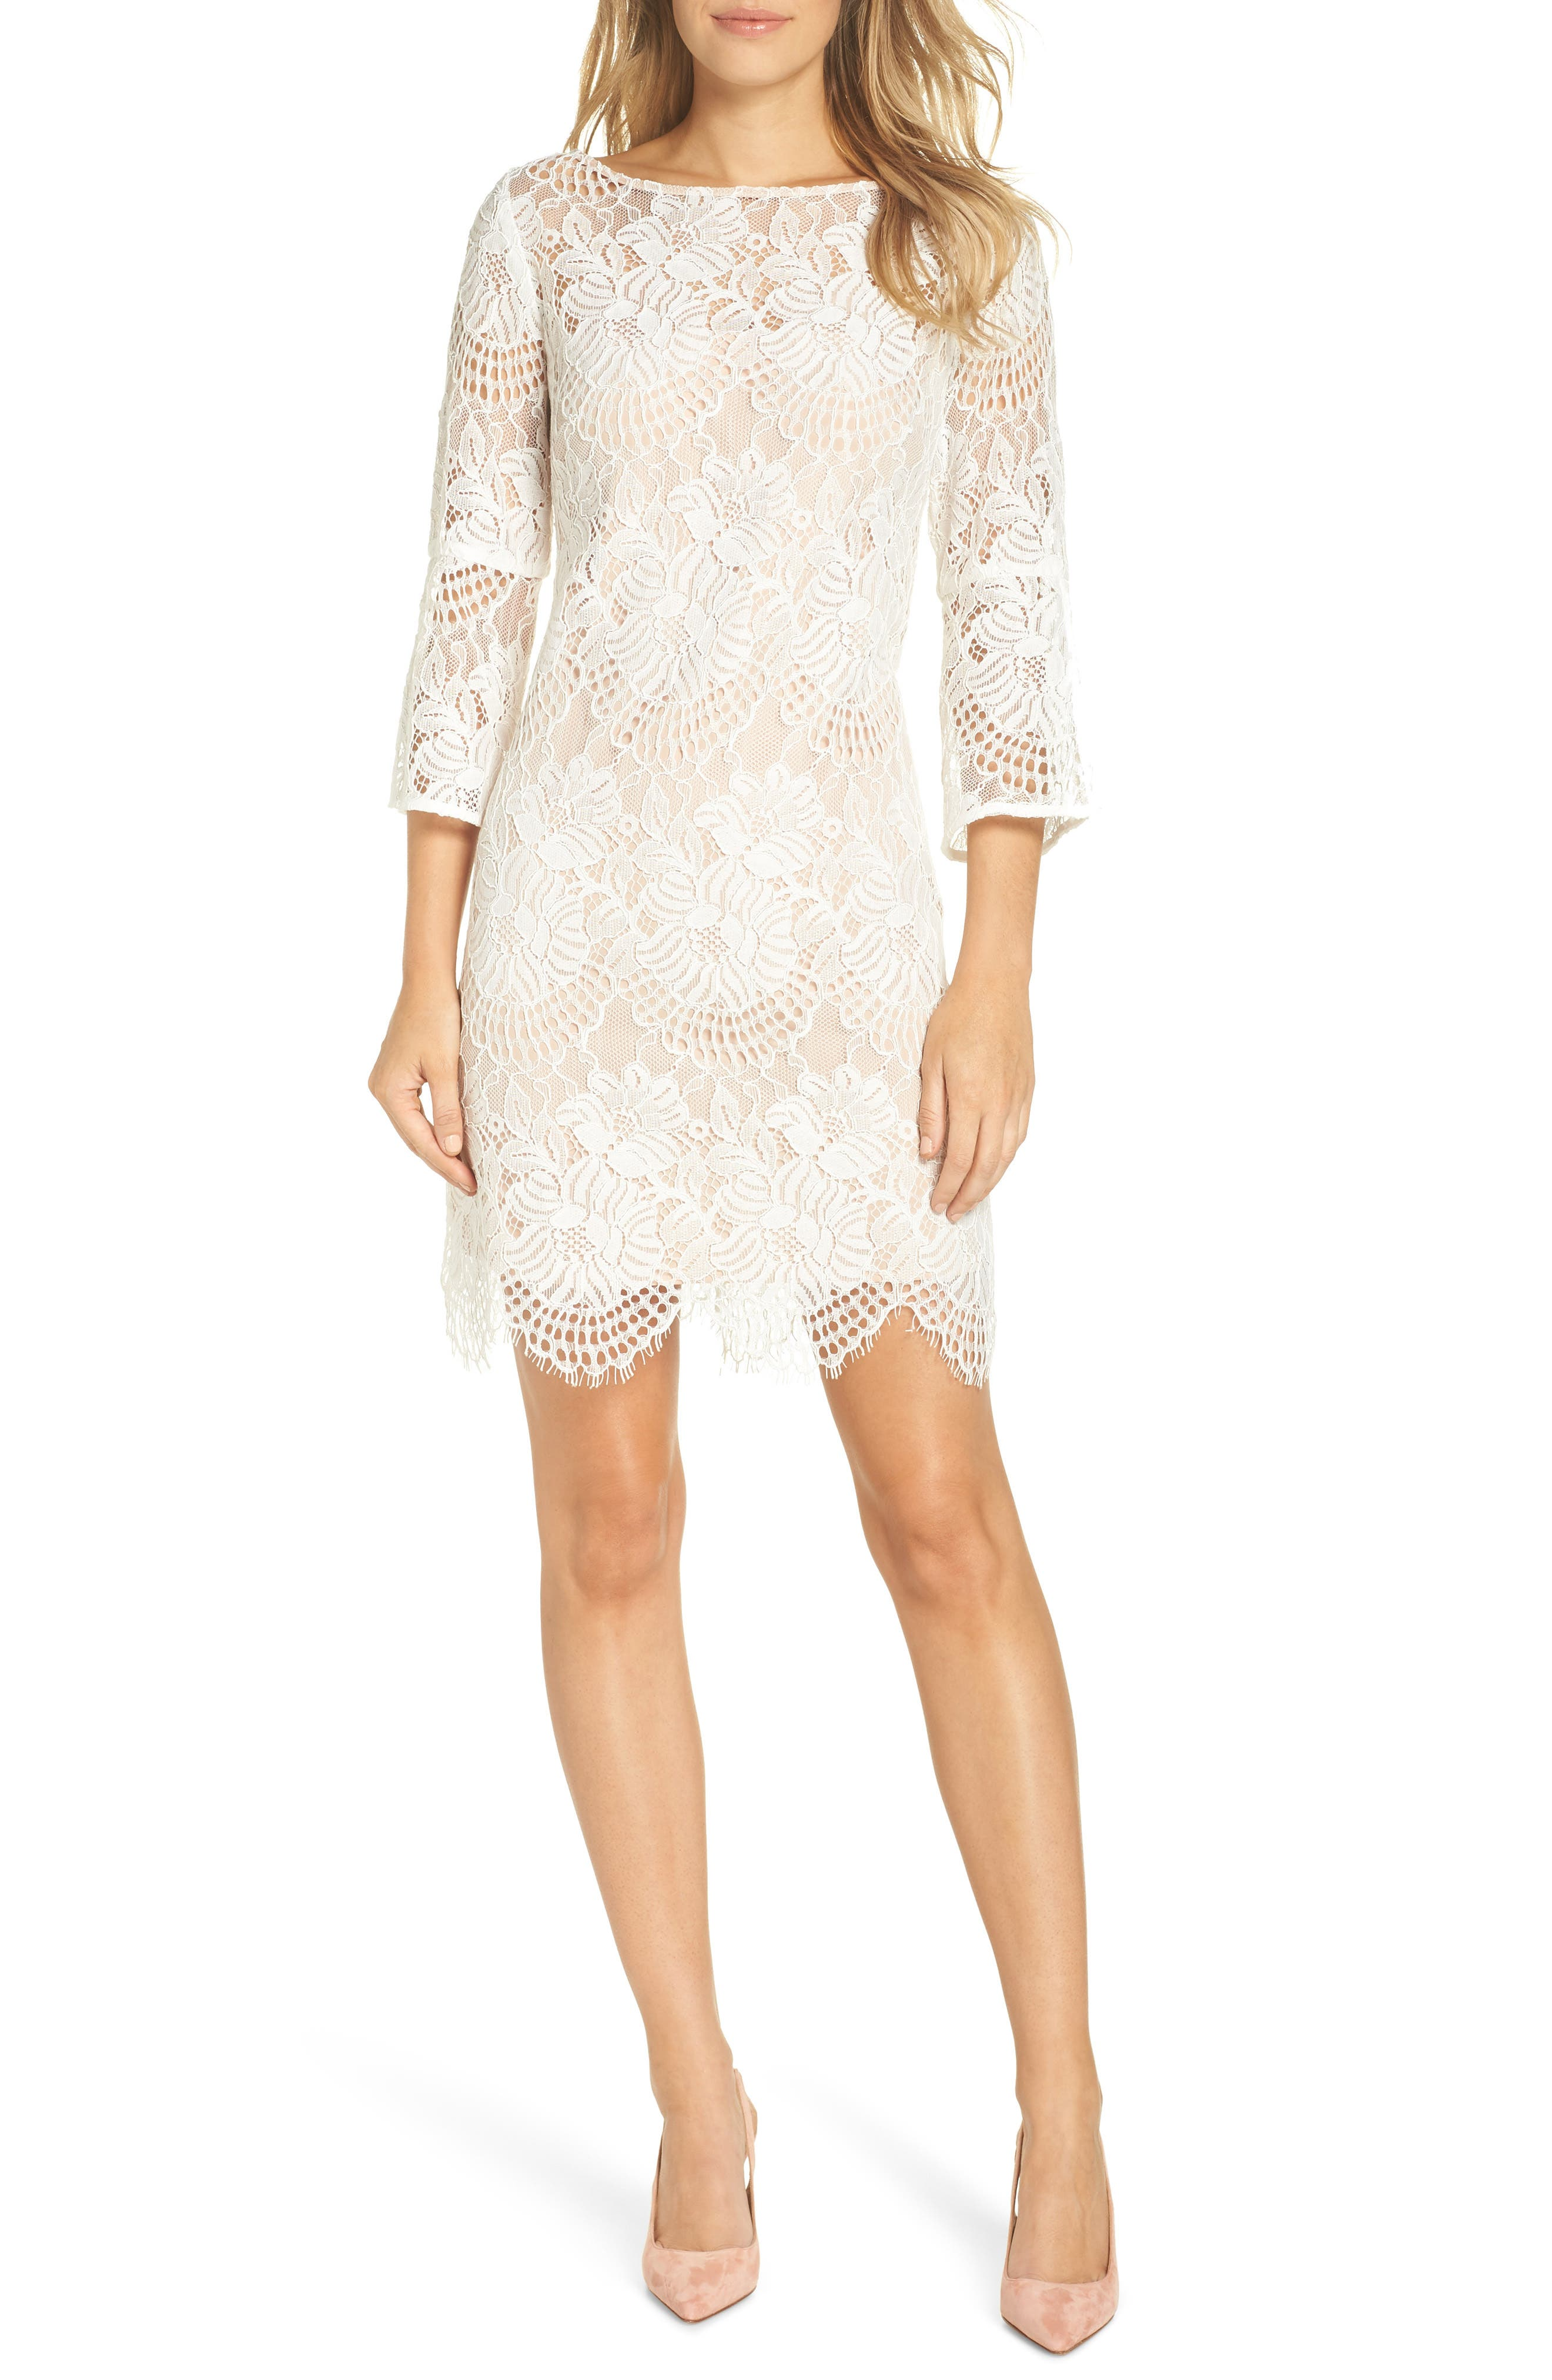 VINCE CAMUTO,                             Lace Shift Dress,                             Main thumbnail 1, color,                             IVORY